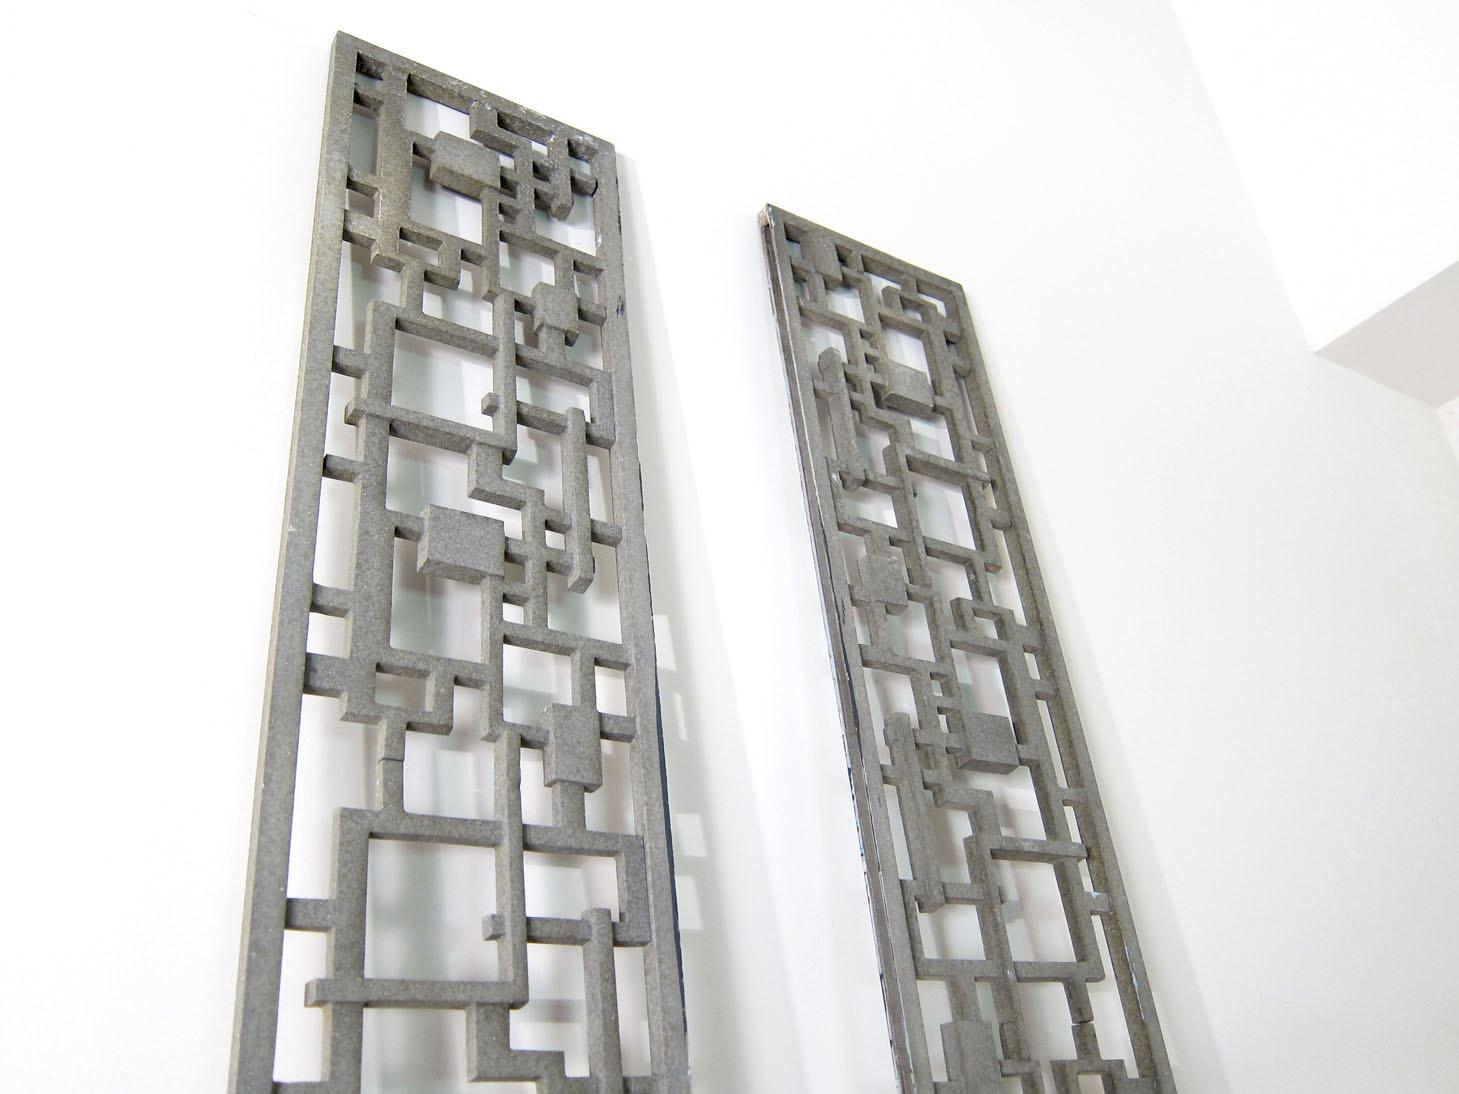 102 Architectural Panels Salvage Modernist Perforated